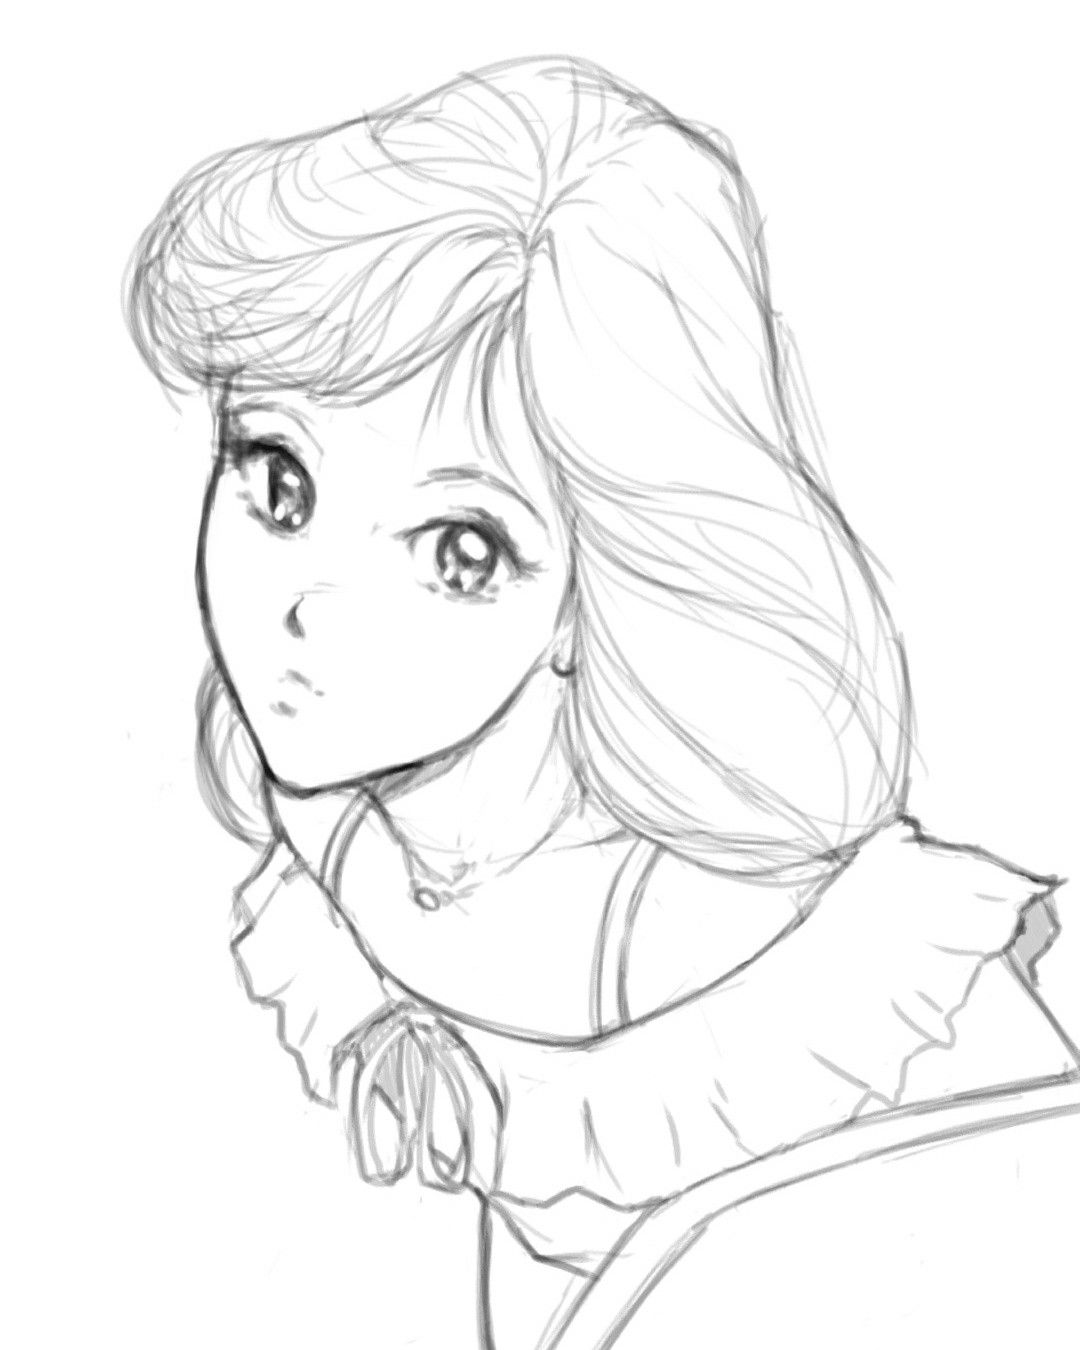 Quick 80 S Style Anime Drawing I Ll Try Coloring This One Later Art Drawing Sketch Japanese 80s Anime Animeart Manga Mangaart Art Manga Art Drawings